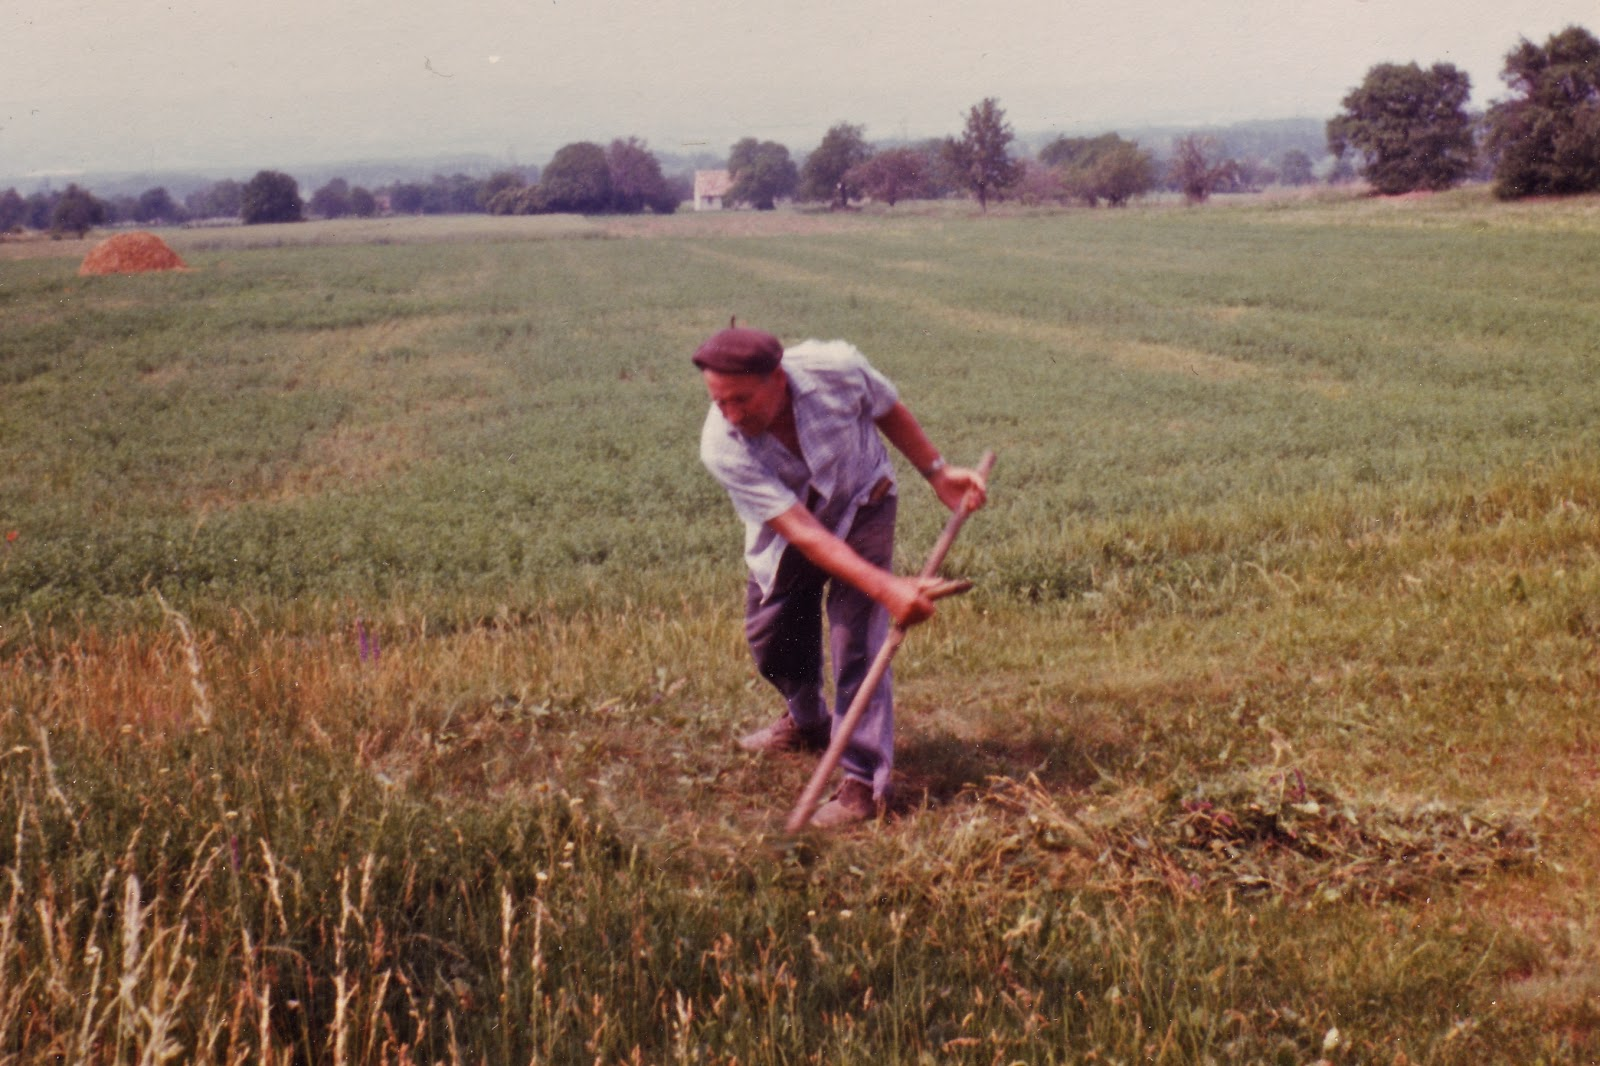 My grandfather scything feed for the rabbits - a photo I took in the mid to late 70's